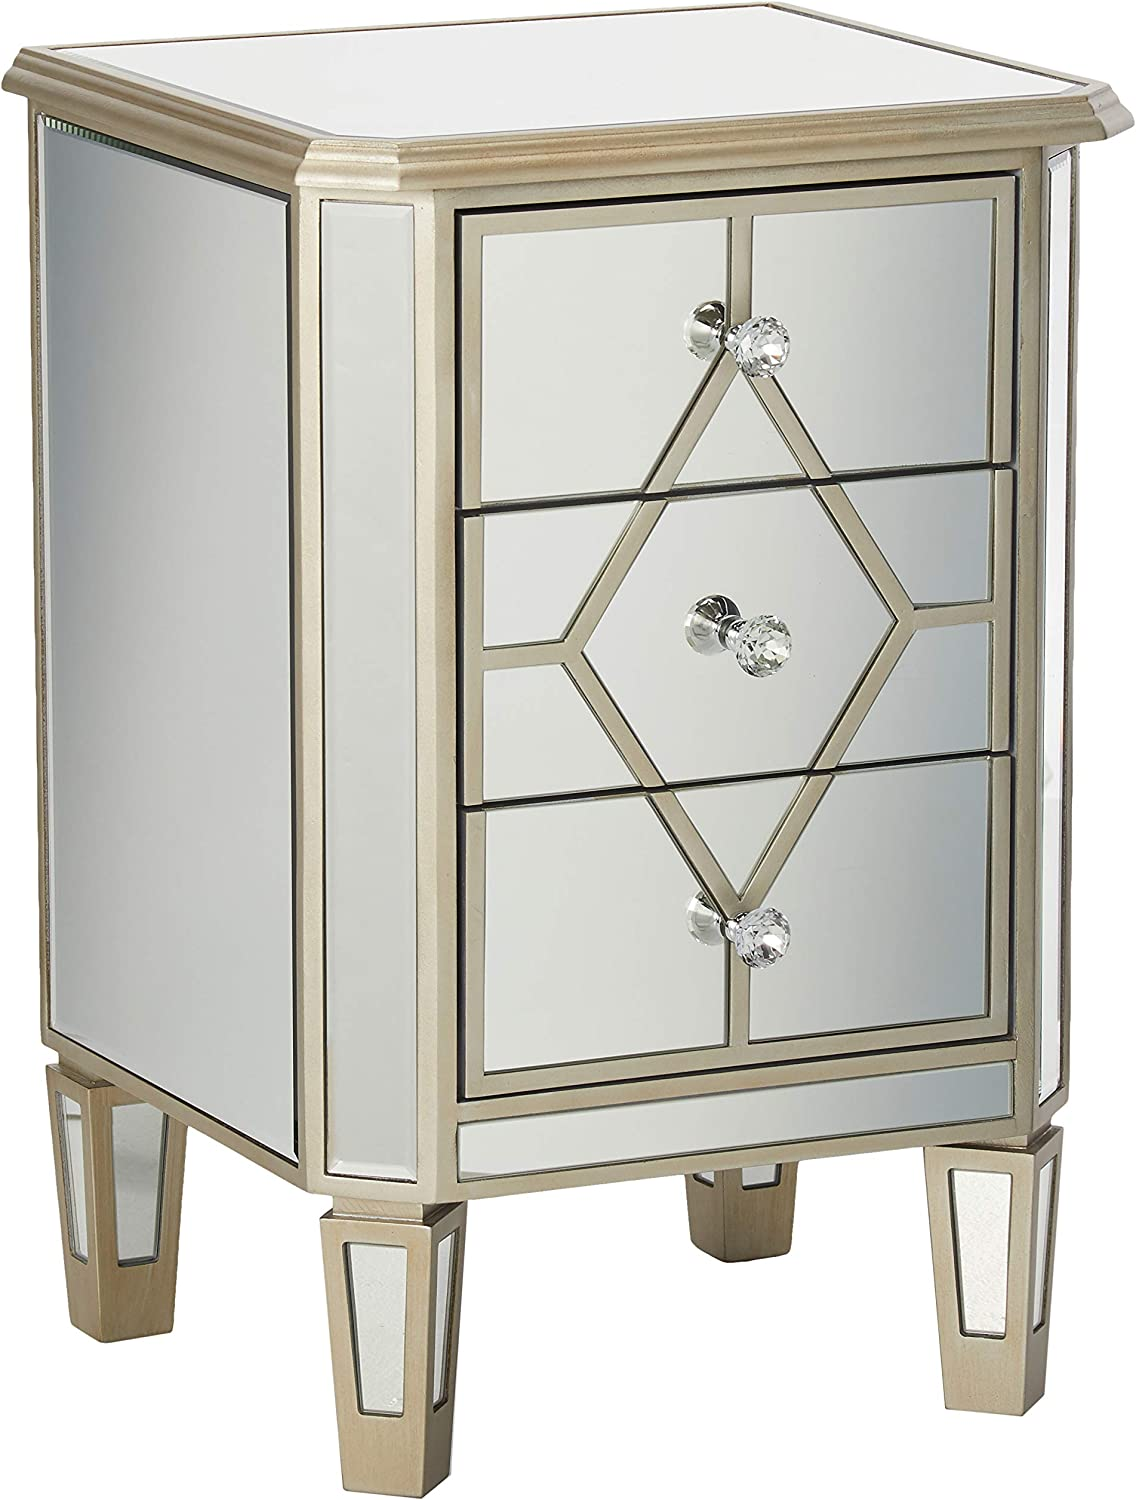 Christopher Knight Home Sohan Silver Finished Mirrored 3 Drawer Cabinet with Faux Wood Frame, Multicolor